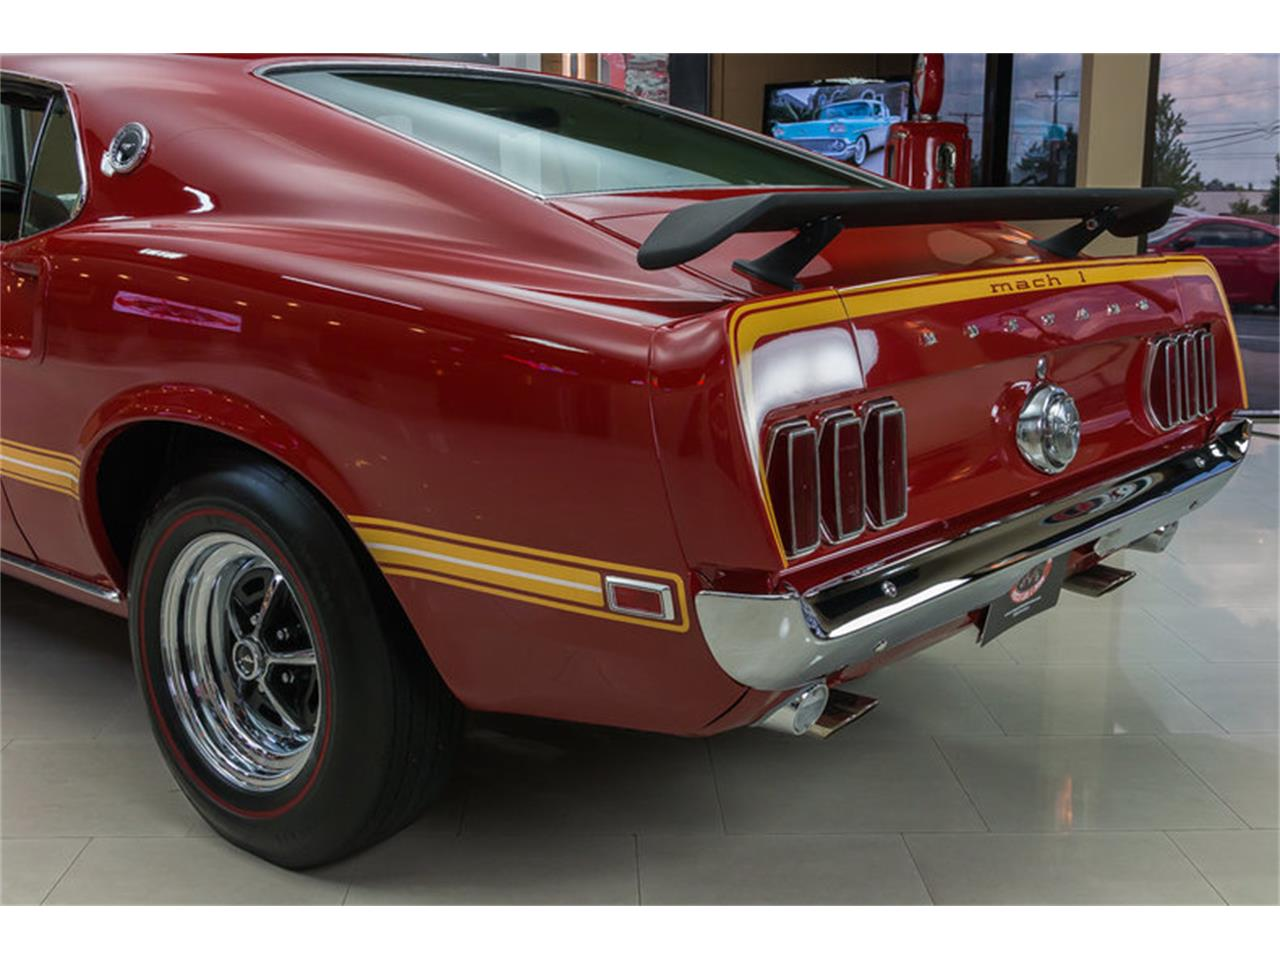 Large Picture of 1969 Ford Mustang Mach 1 S Code located in Plymouth Michigan - $59,900.00 Offered by Vanguard Motor Sales - IS3G